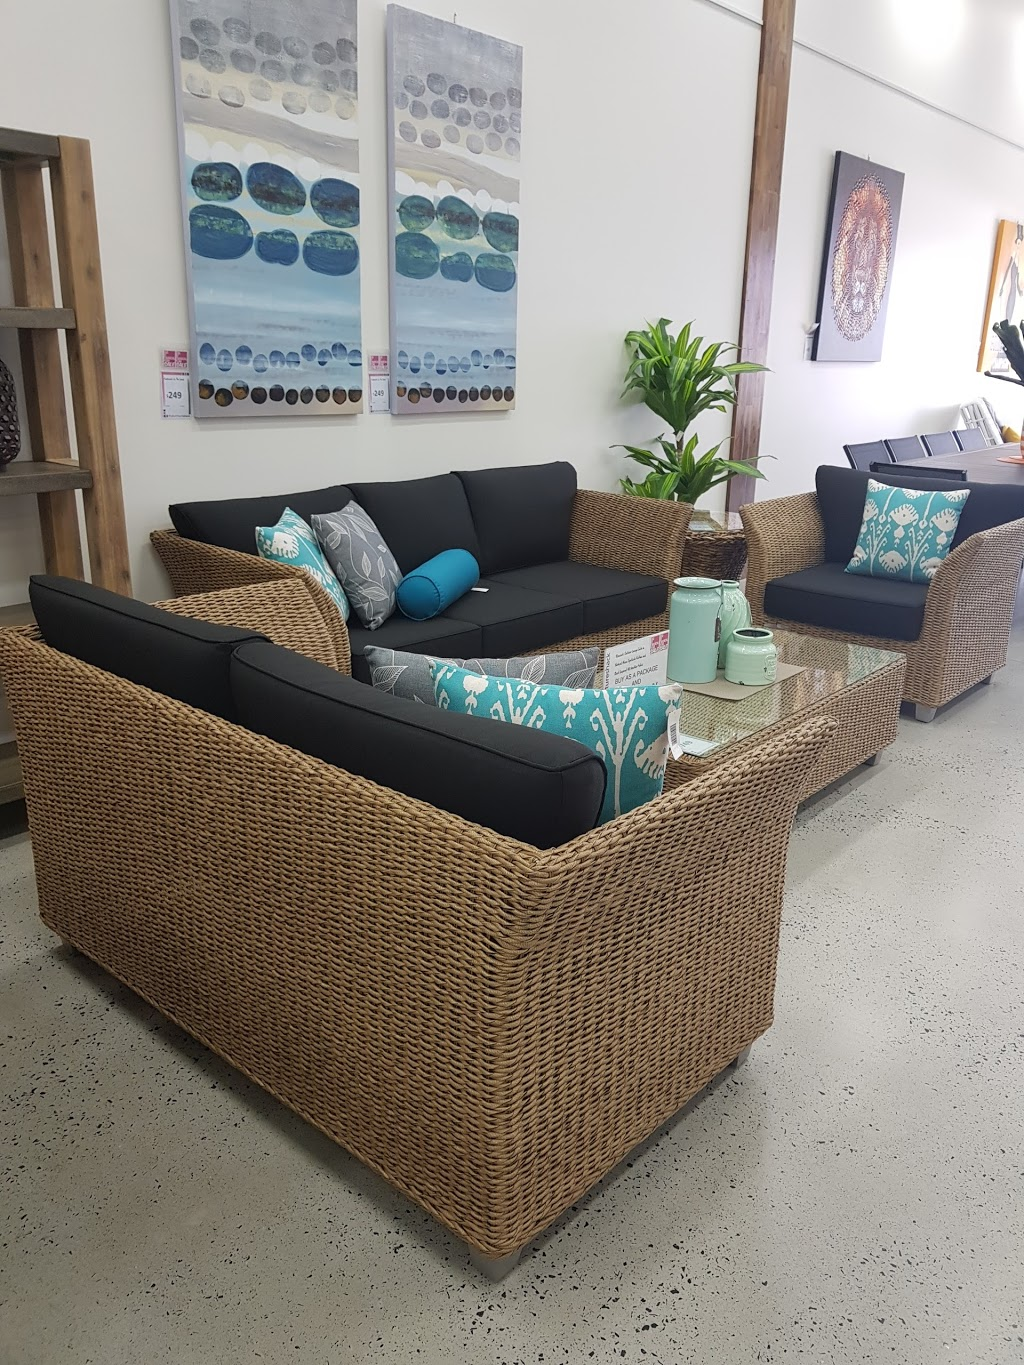 The Furniture Shack- Outdoor Furniture Maroochydore | furniture store | 5/100 Maroochydore Rd, Maroochydore QLD 4558, Australia | 0754435388 OR +61 7 5443 5388